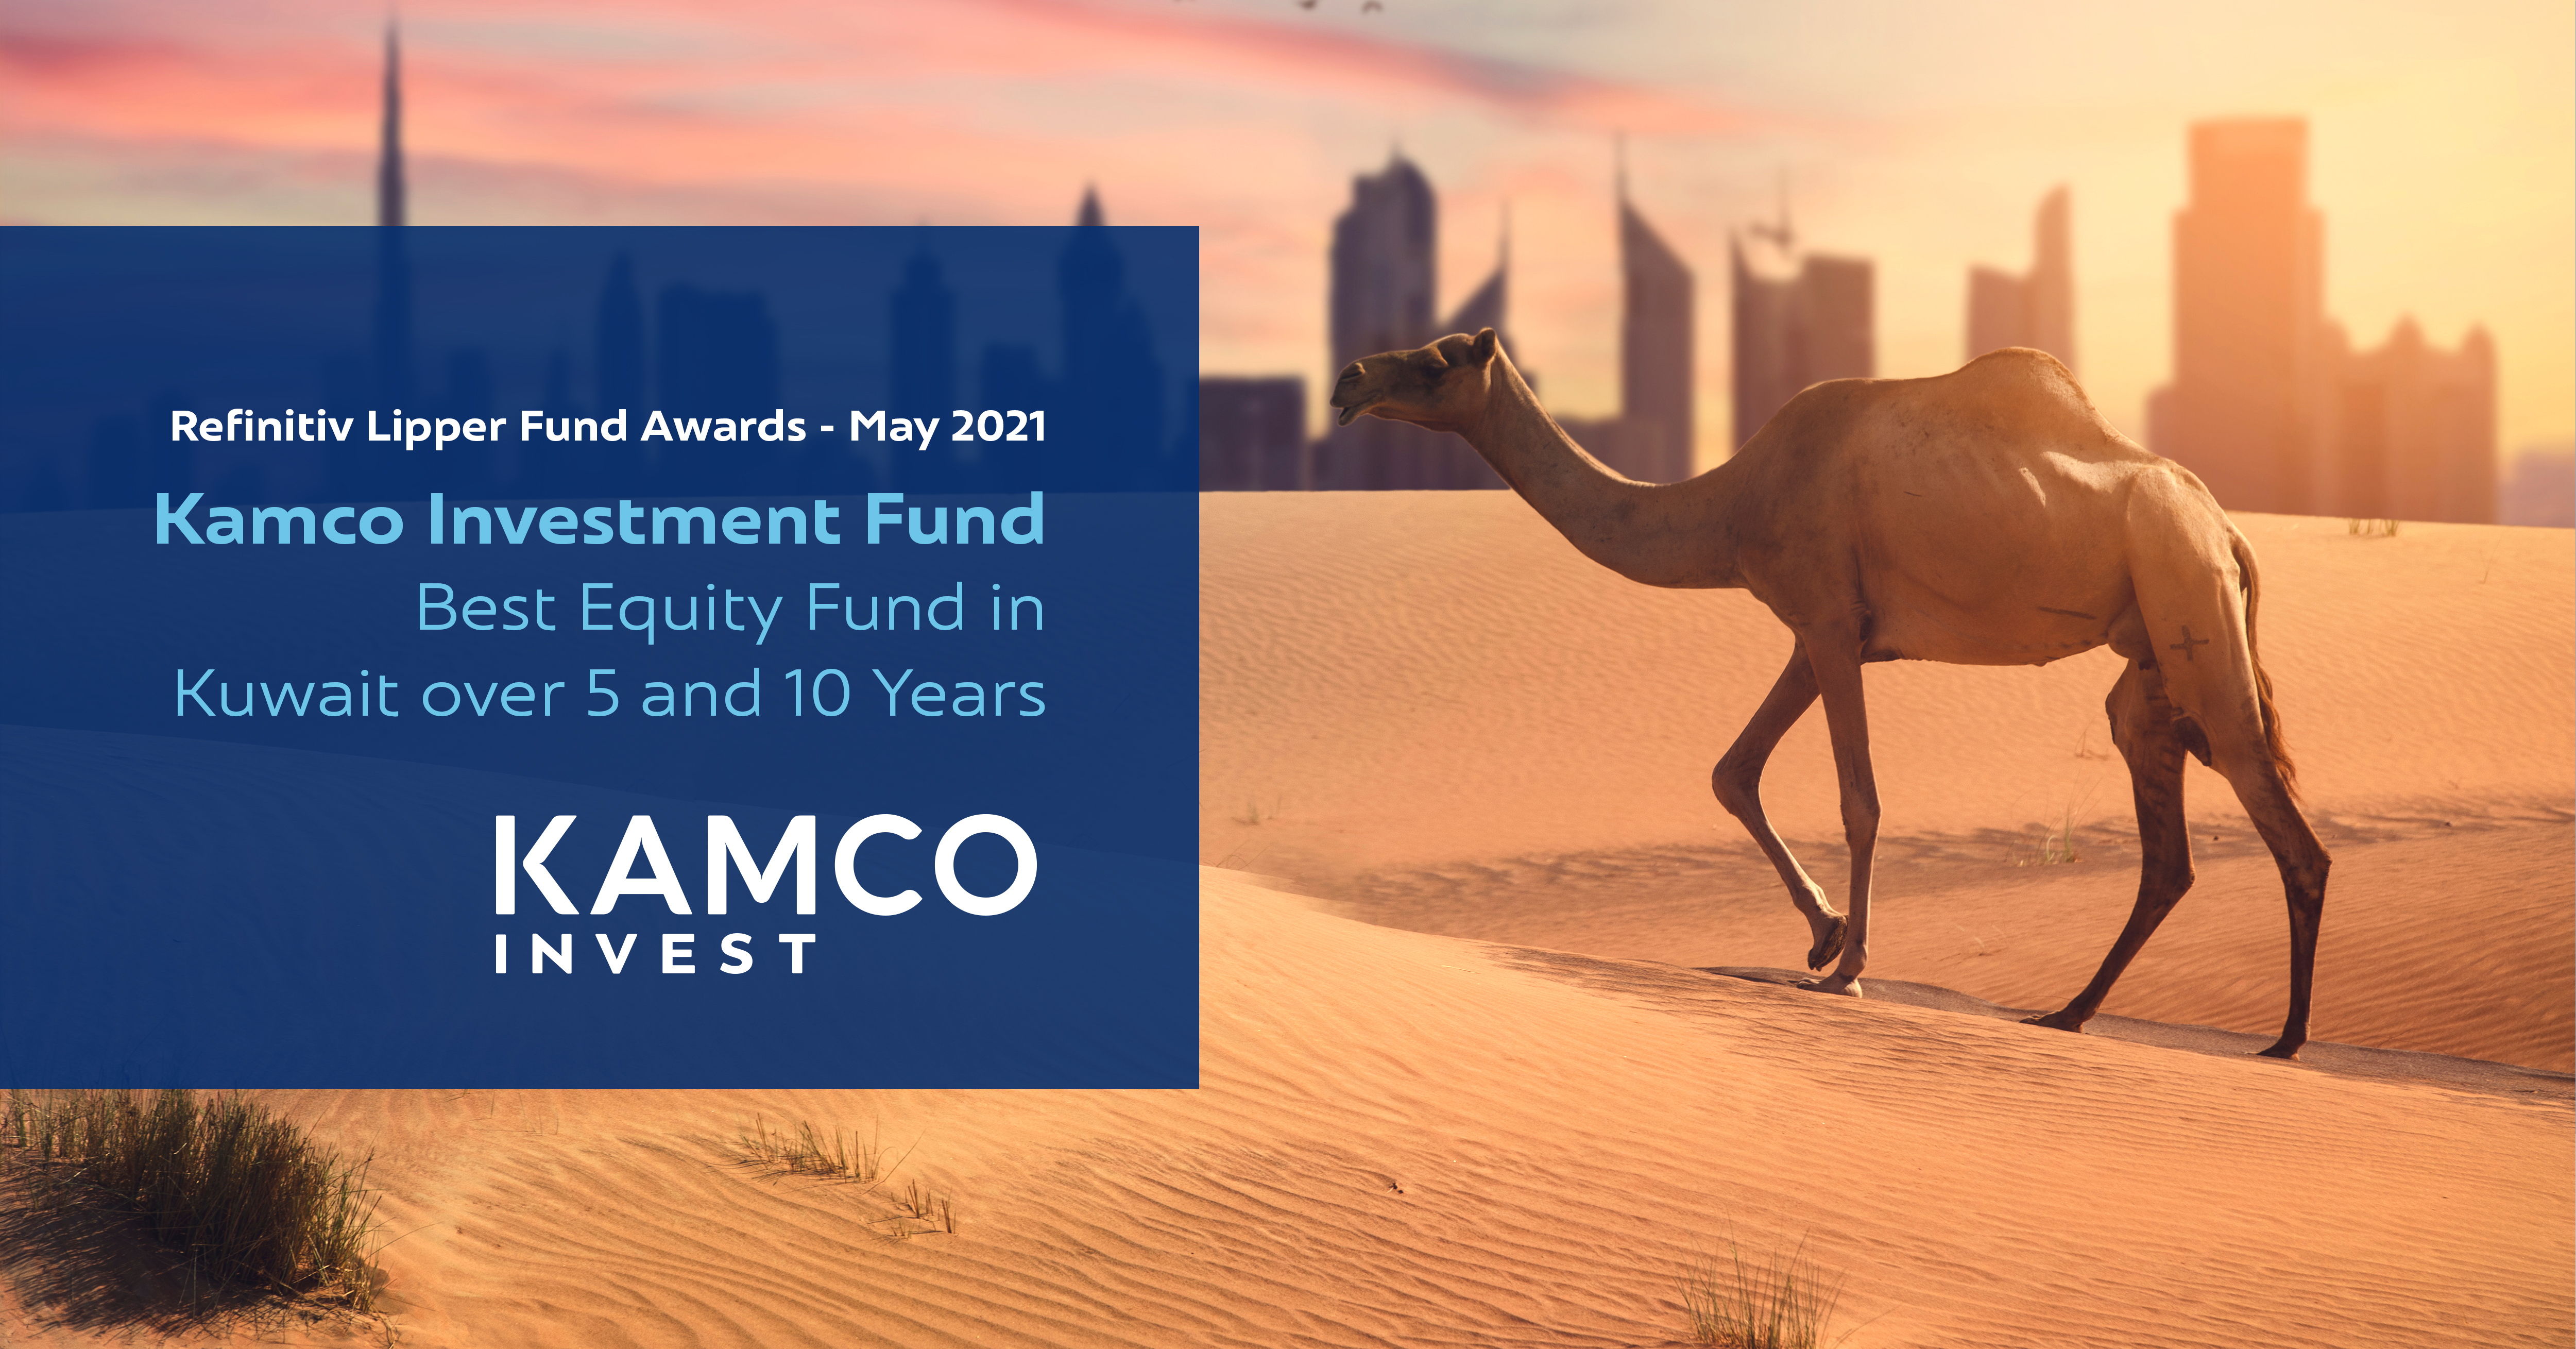 Kamco Investment Fund Award